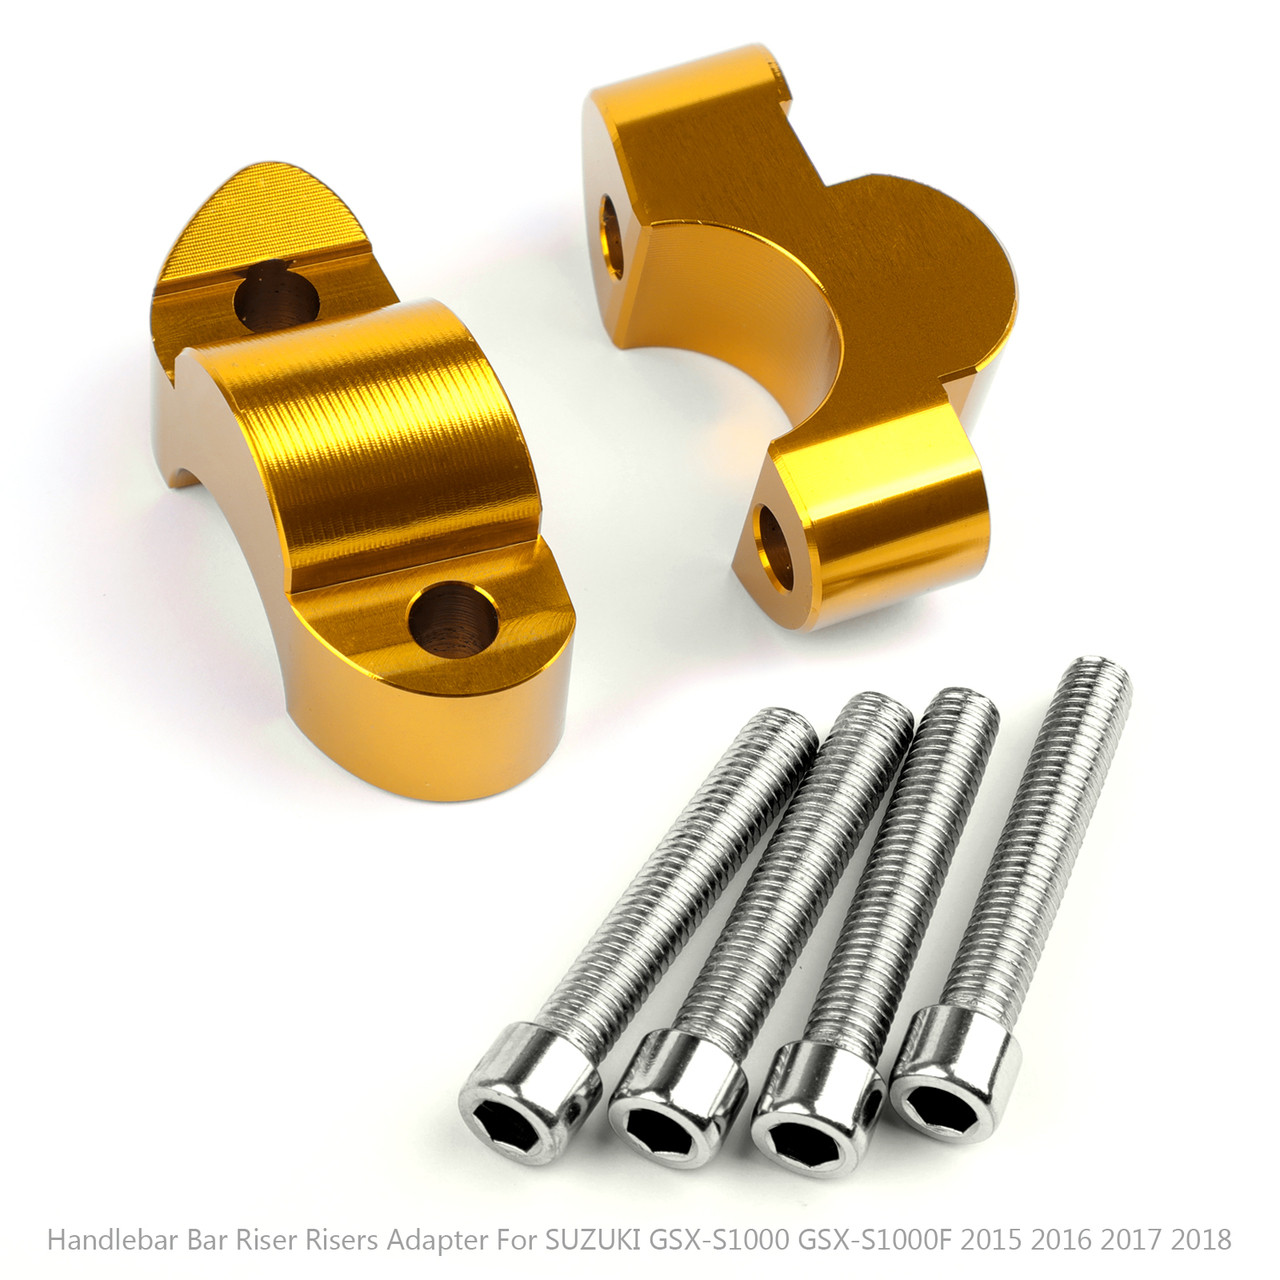 "Handlebar Risers 1"" Bar 20mm For Suzuki GSX-S1000 GSX-S1000F 2015-2018 Gold"